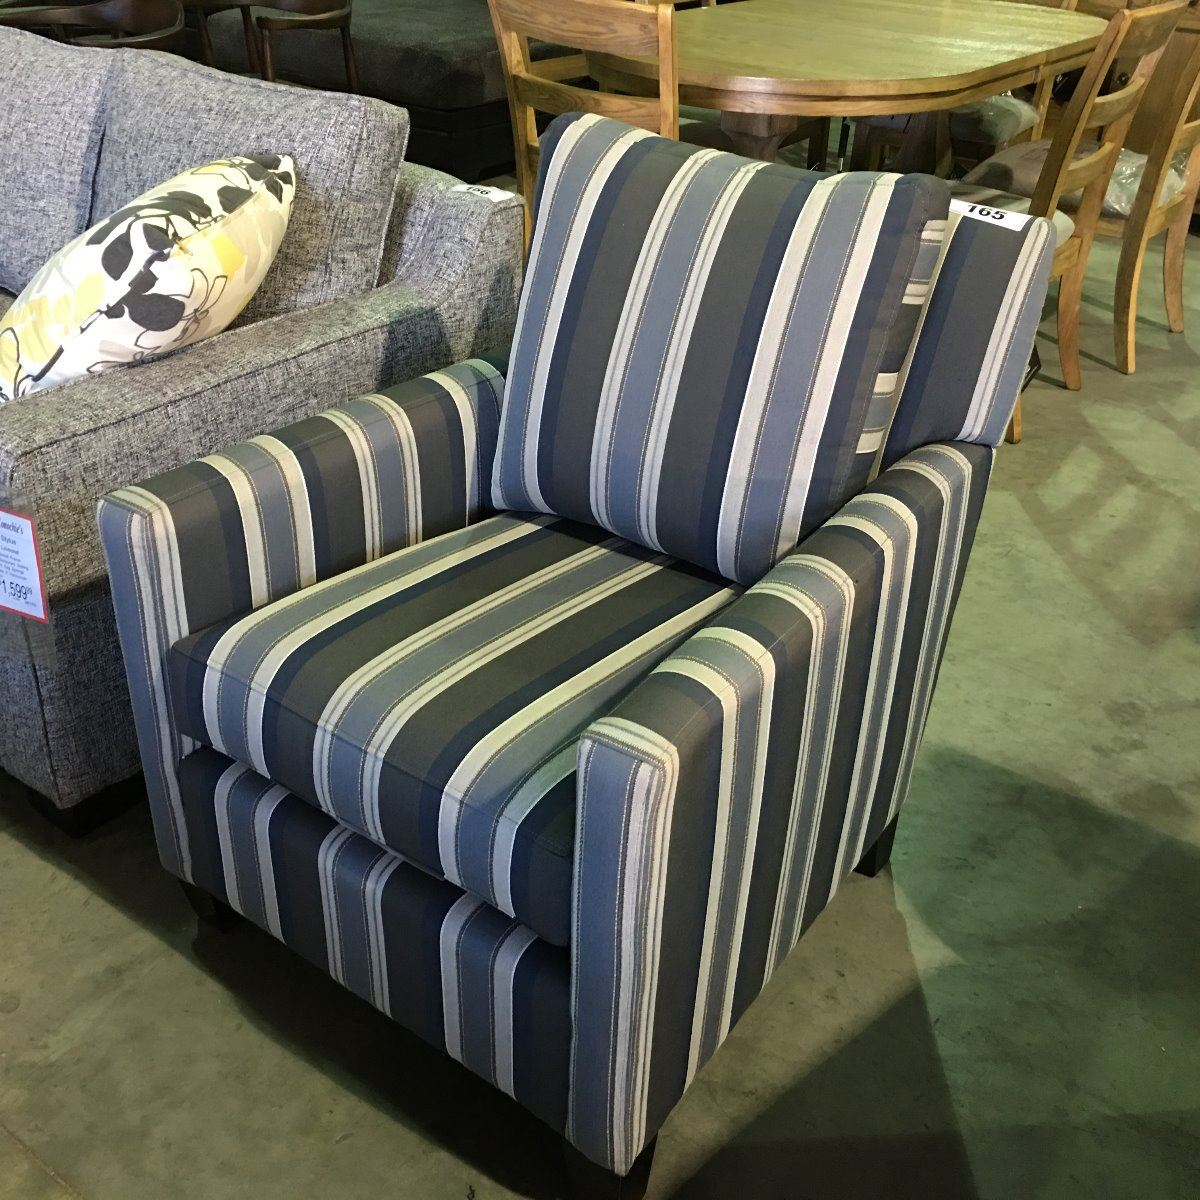 STYLUS CLARK BLUE & GREY STRIPED ACCENT CHAIR